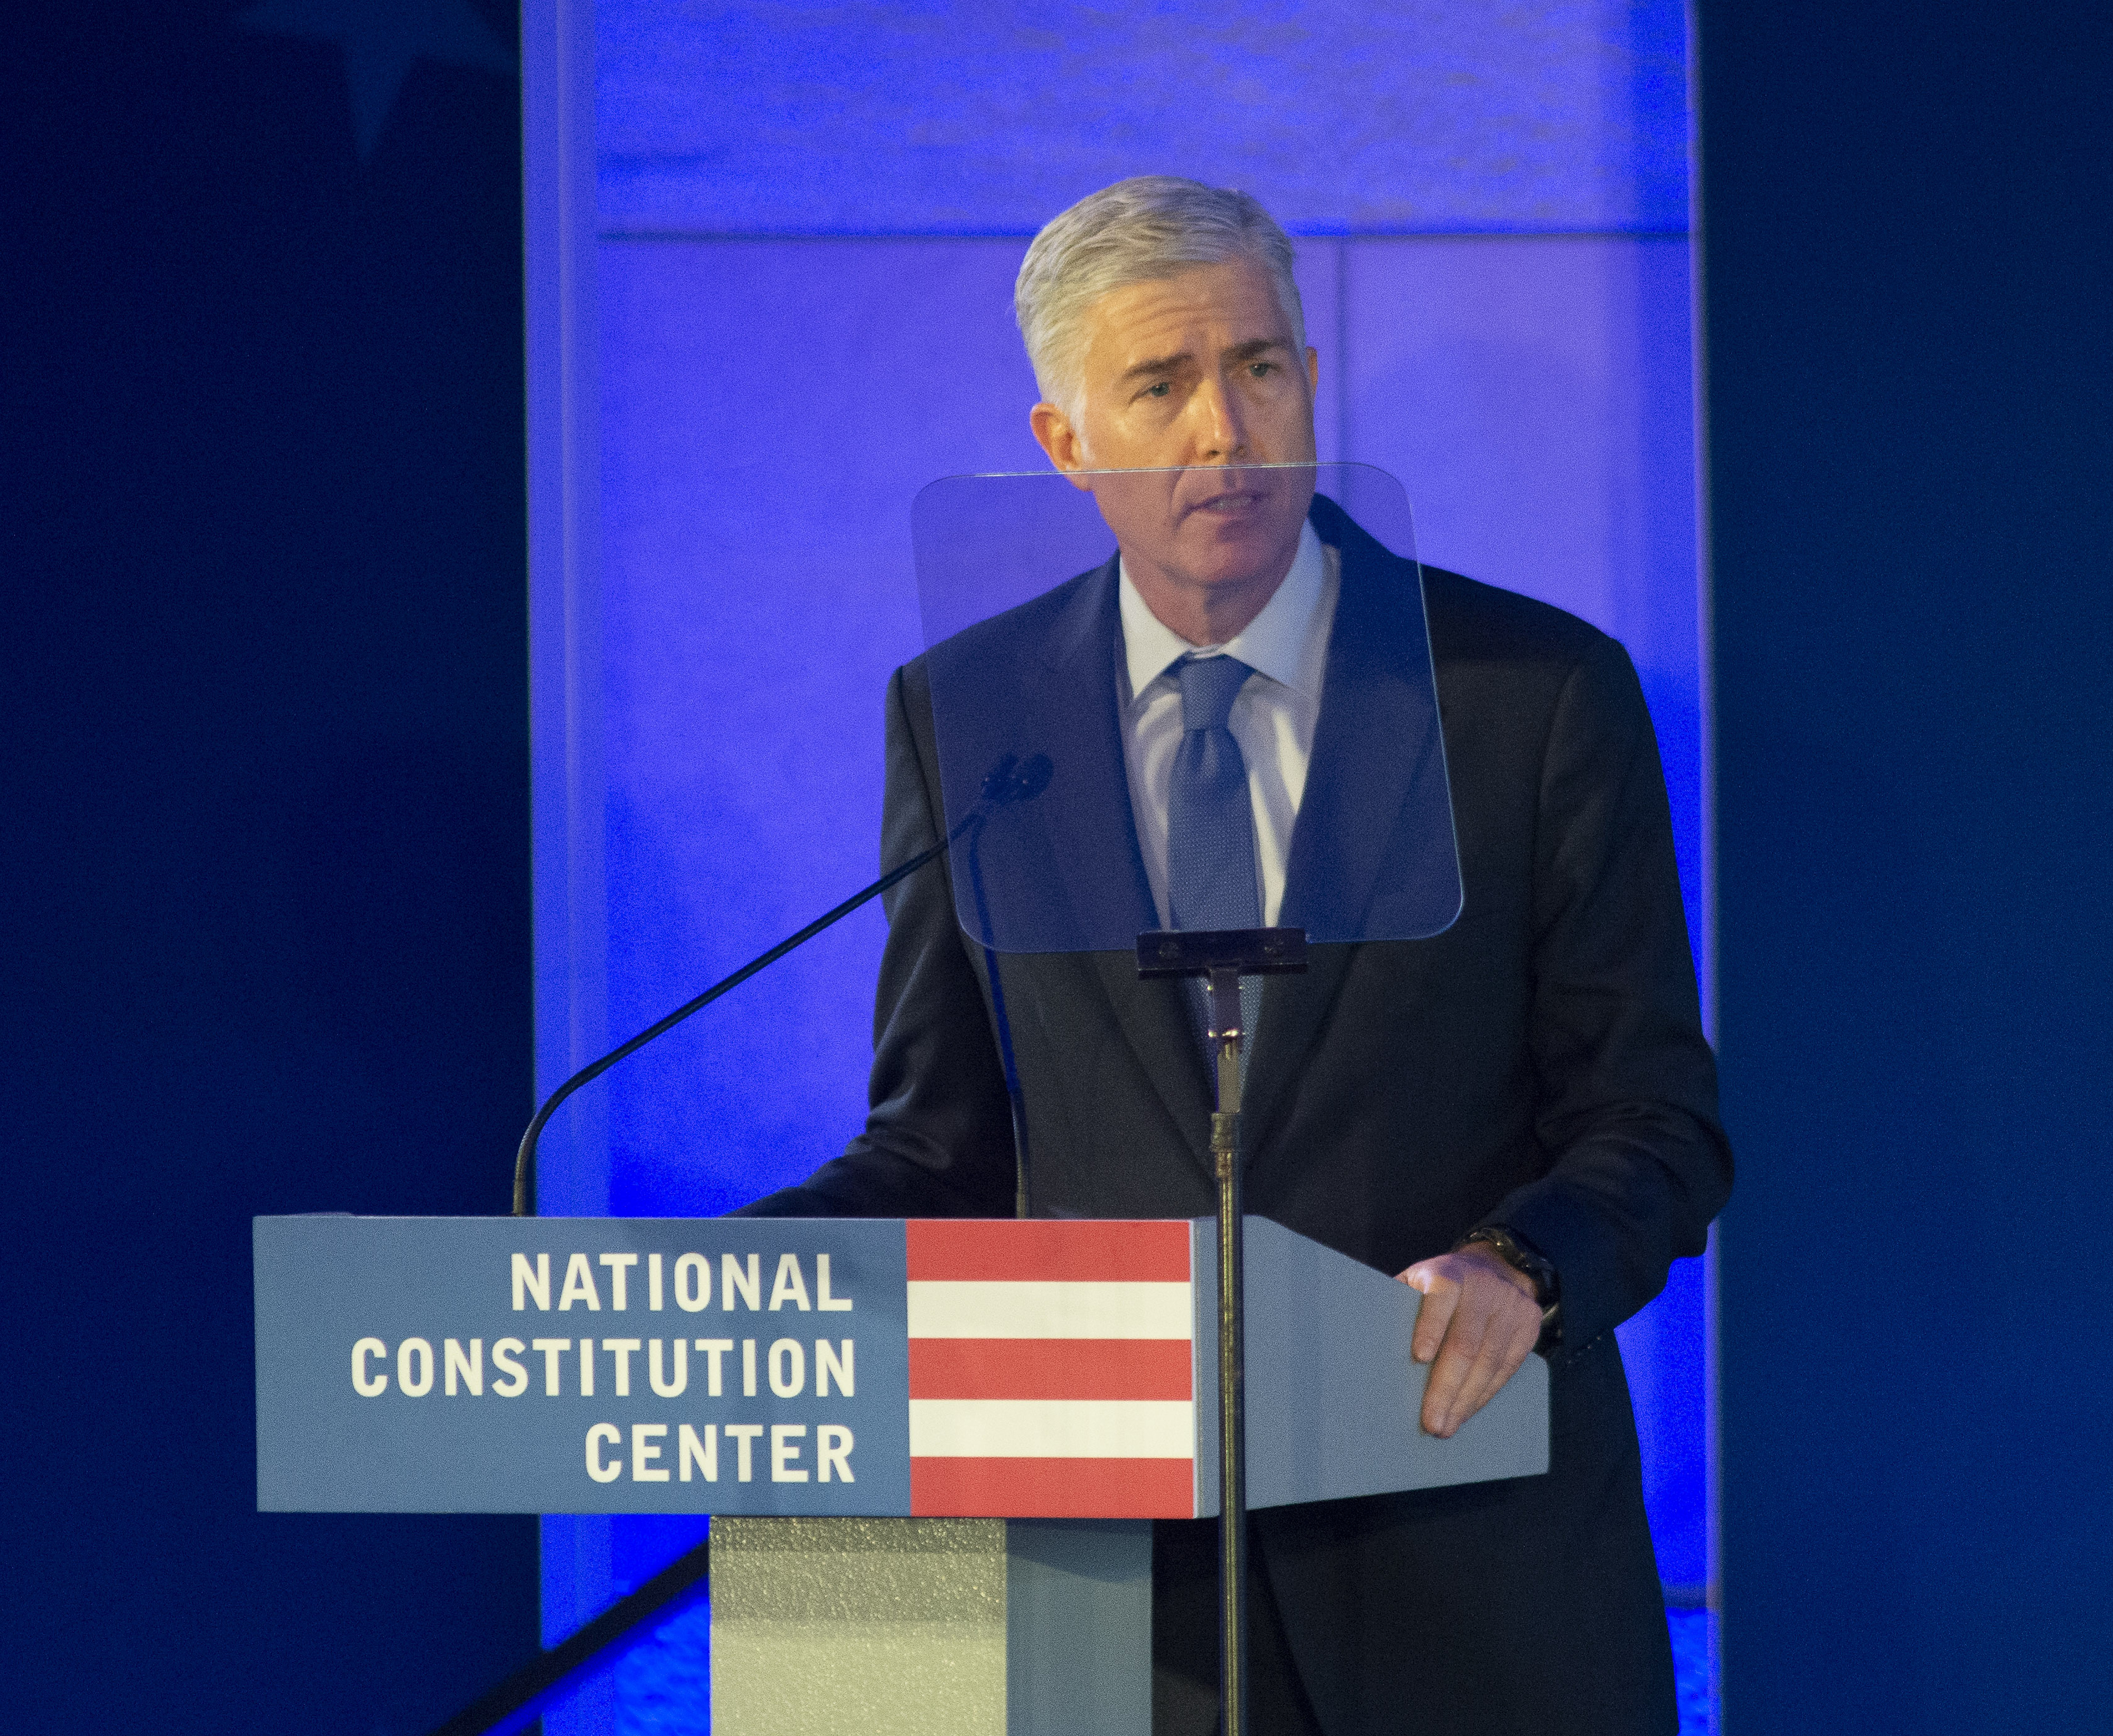 Justice Neil Gorsuch makes remarks at the National Constitution Center on October 27, 2019. (William Thomas Cain/Getty Images)